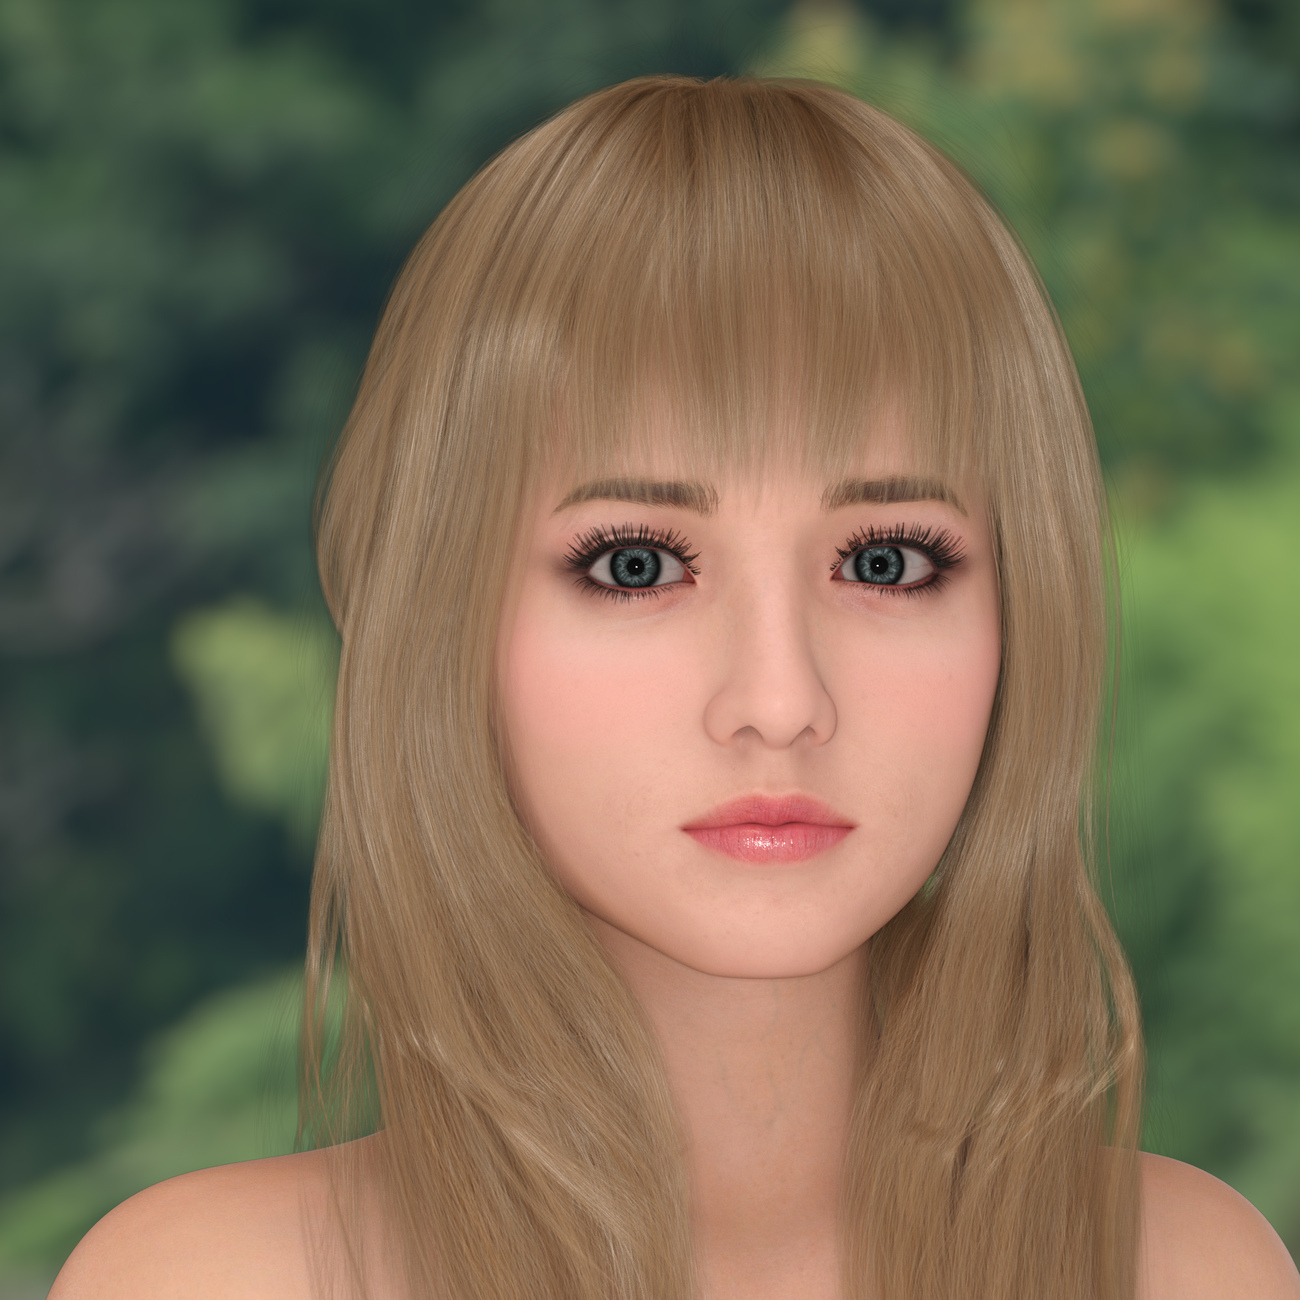 HID Anna Portrait by x7